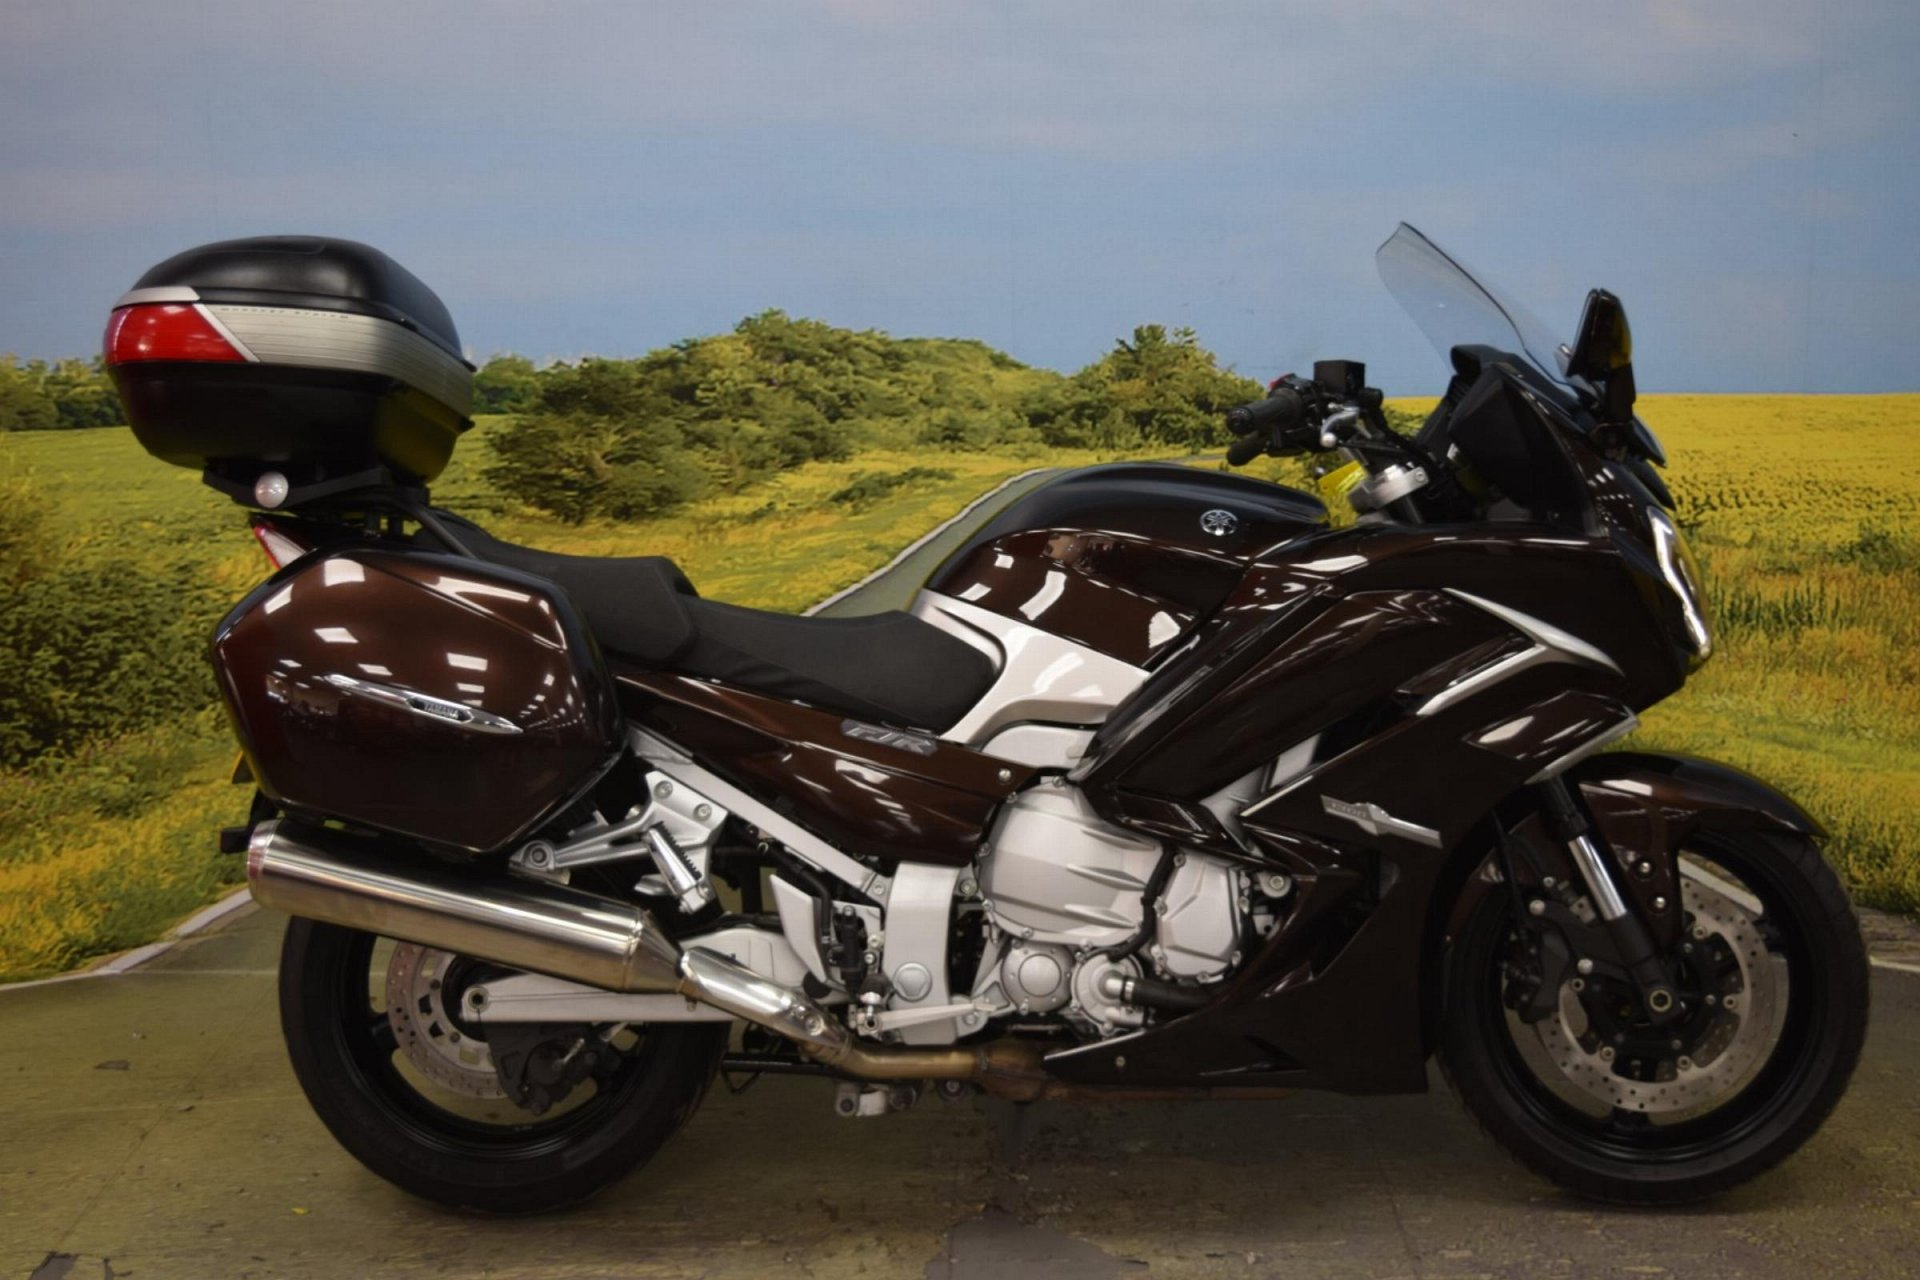 2014 Yamaha FJR 1300 AE for sale in Staffordshire